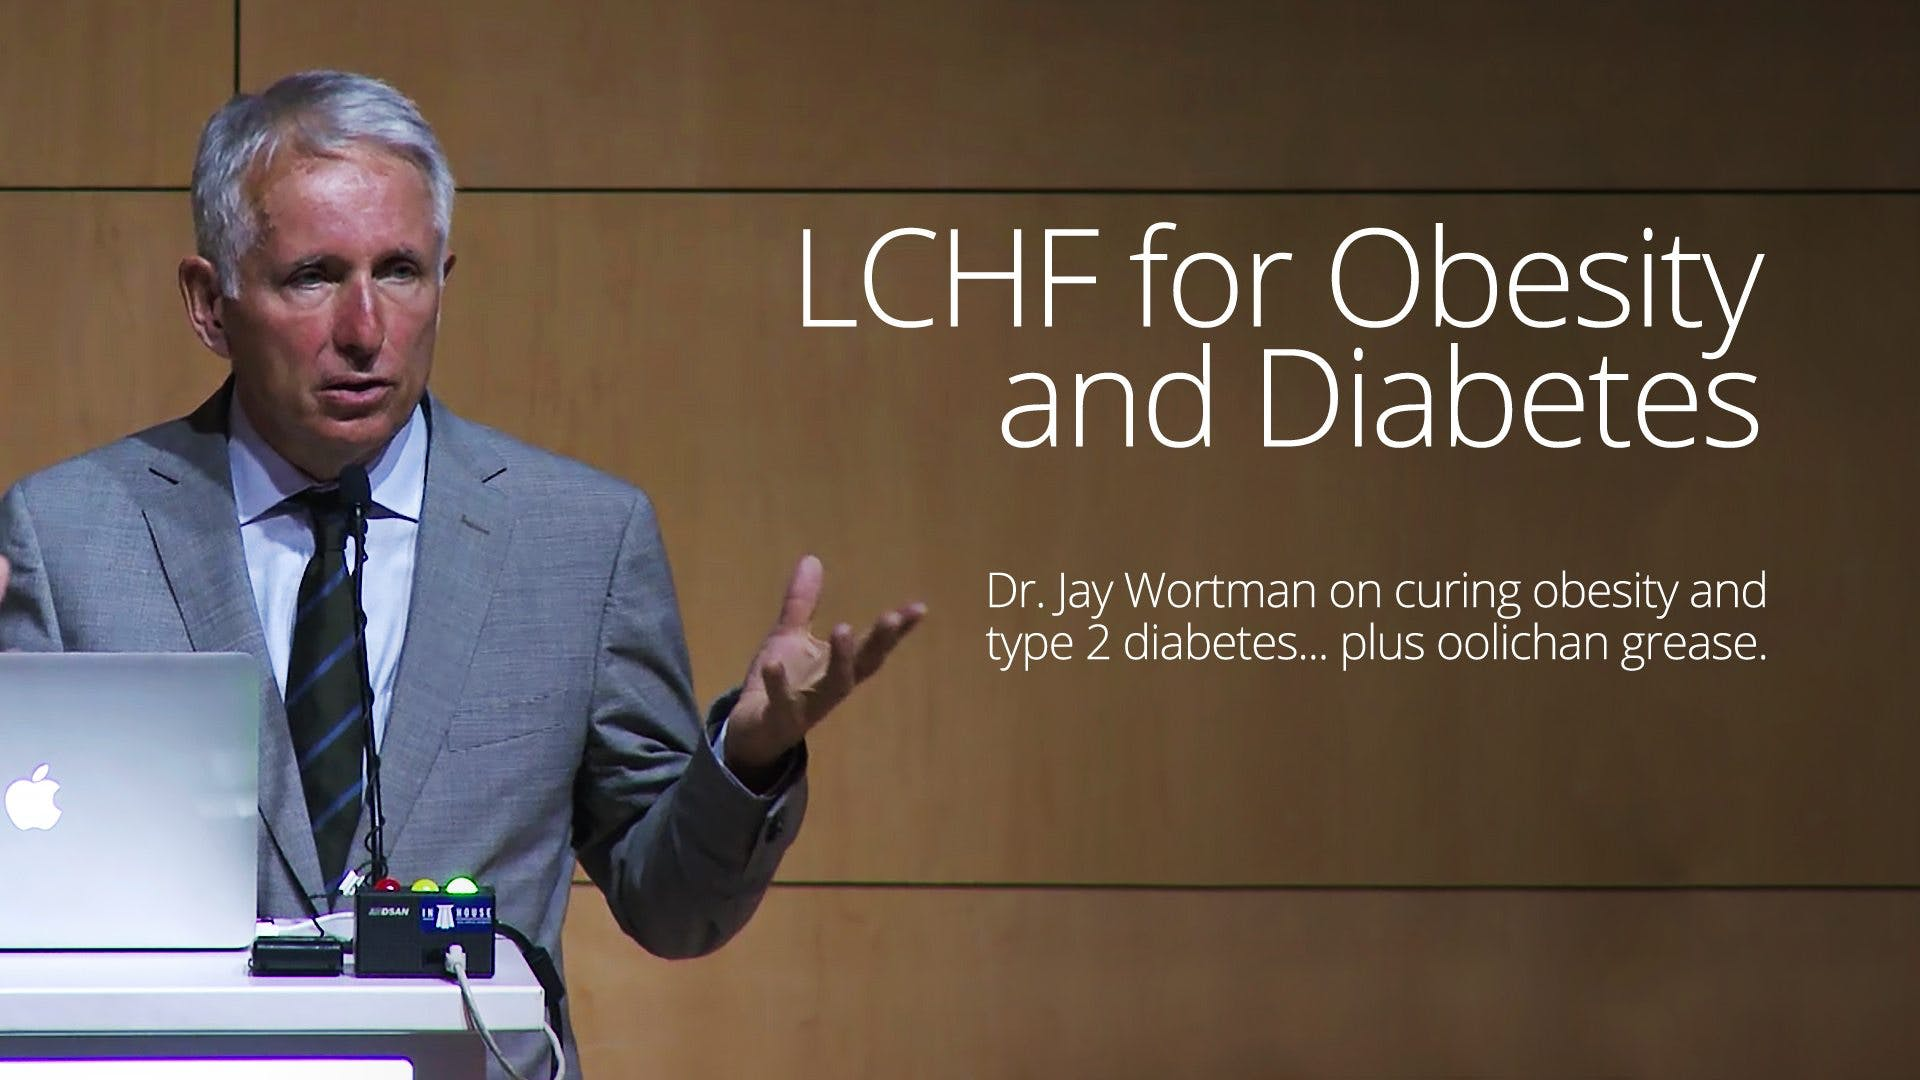 LCHF for Obesity and Diabetes – Dr. Jay Wortman